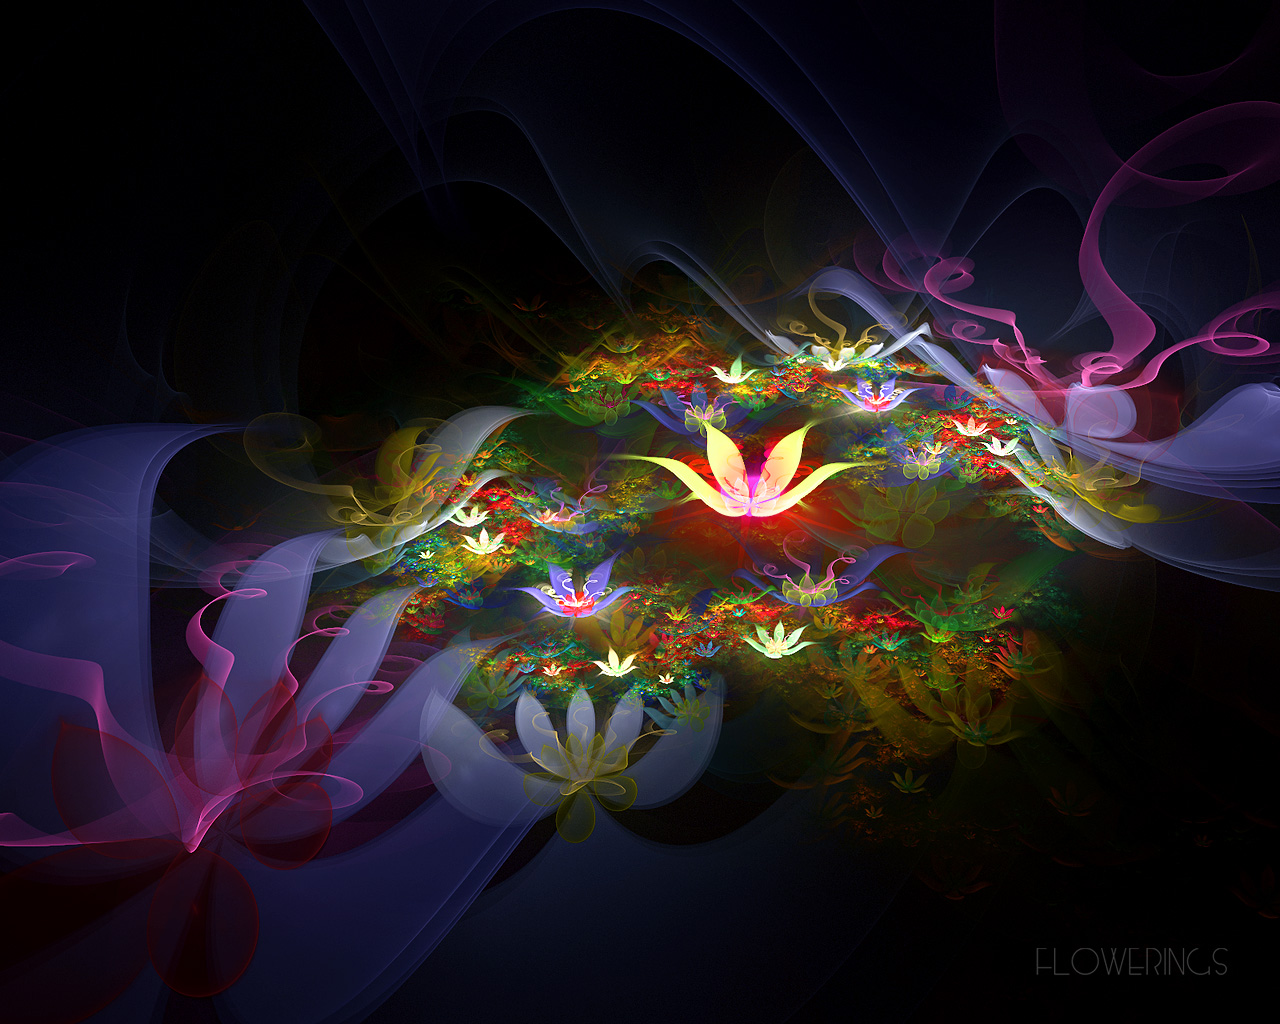 3d flower wallpapers for desktop 21 cool hd wallpaper for Immagini desktop hd 3d